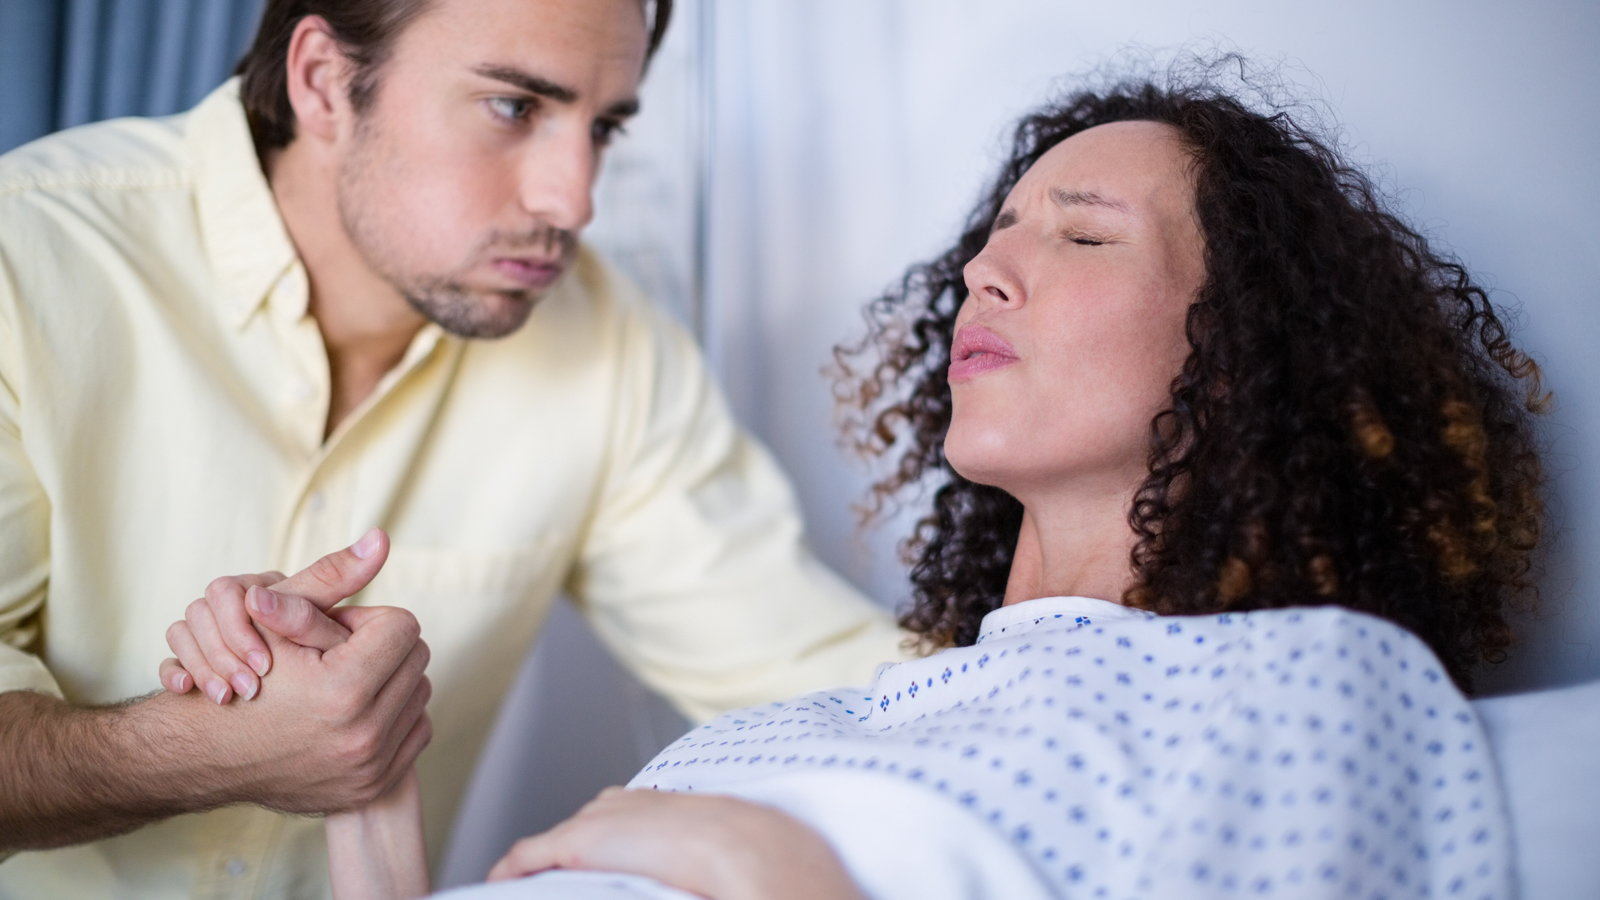 woman using lamaze breathing during birth